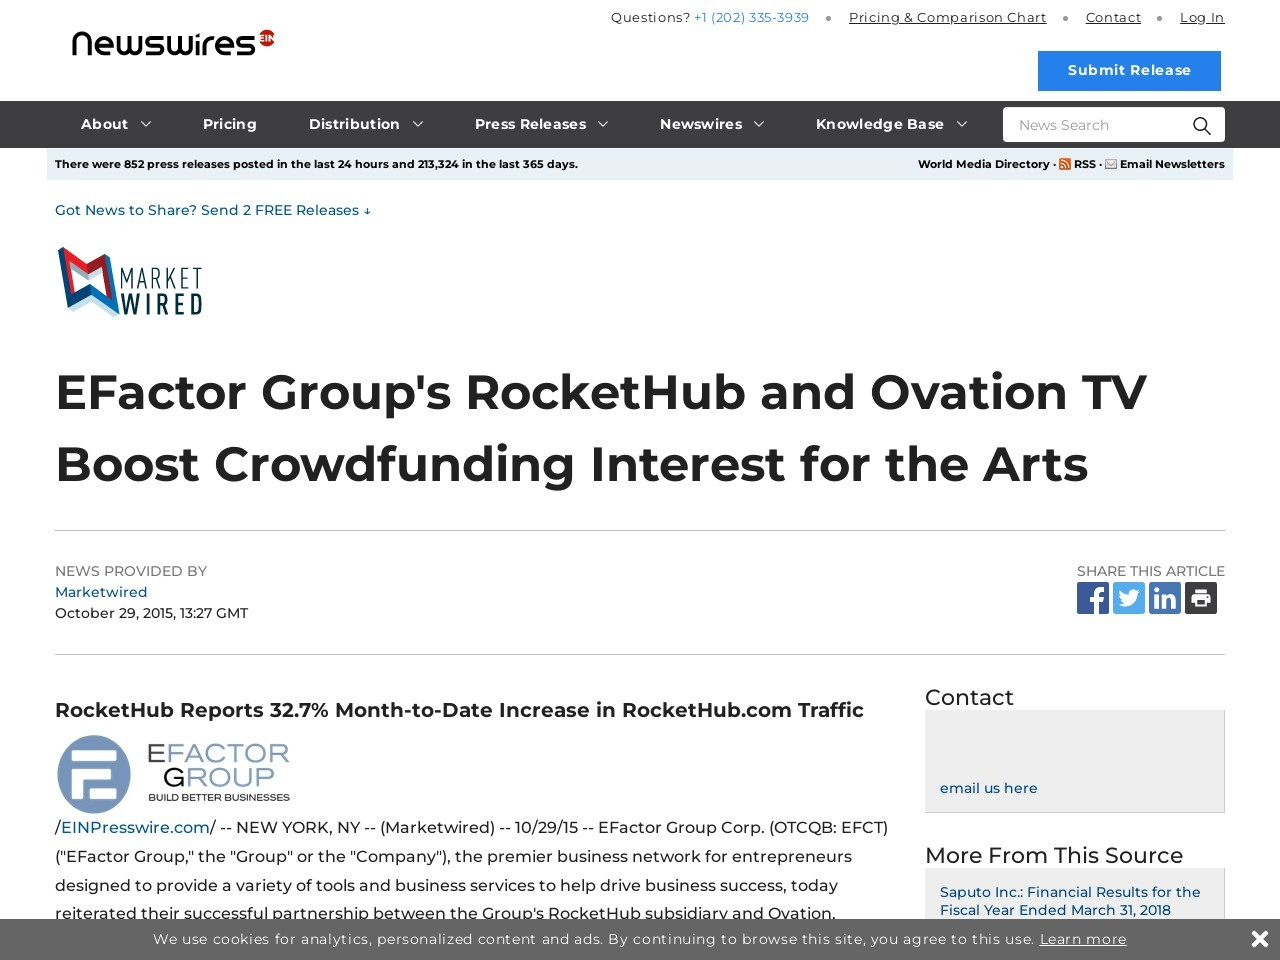 EFactor Group's RocketHub and Ovation TV Boost Crowdfunding Interest for the Arts